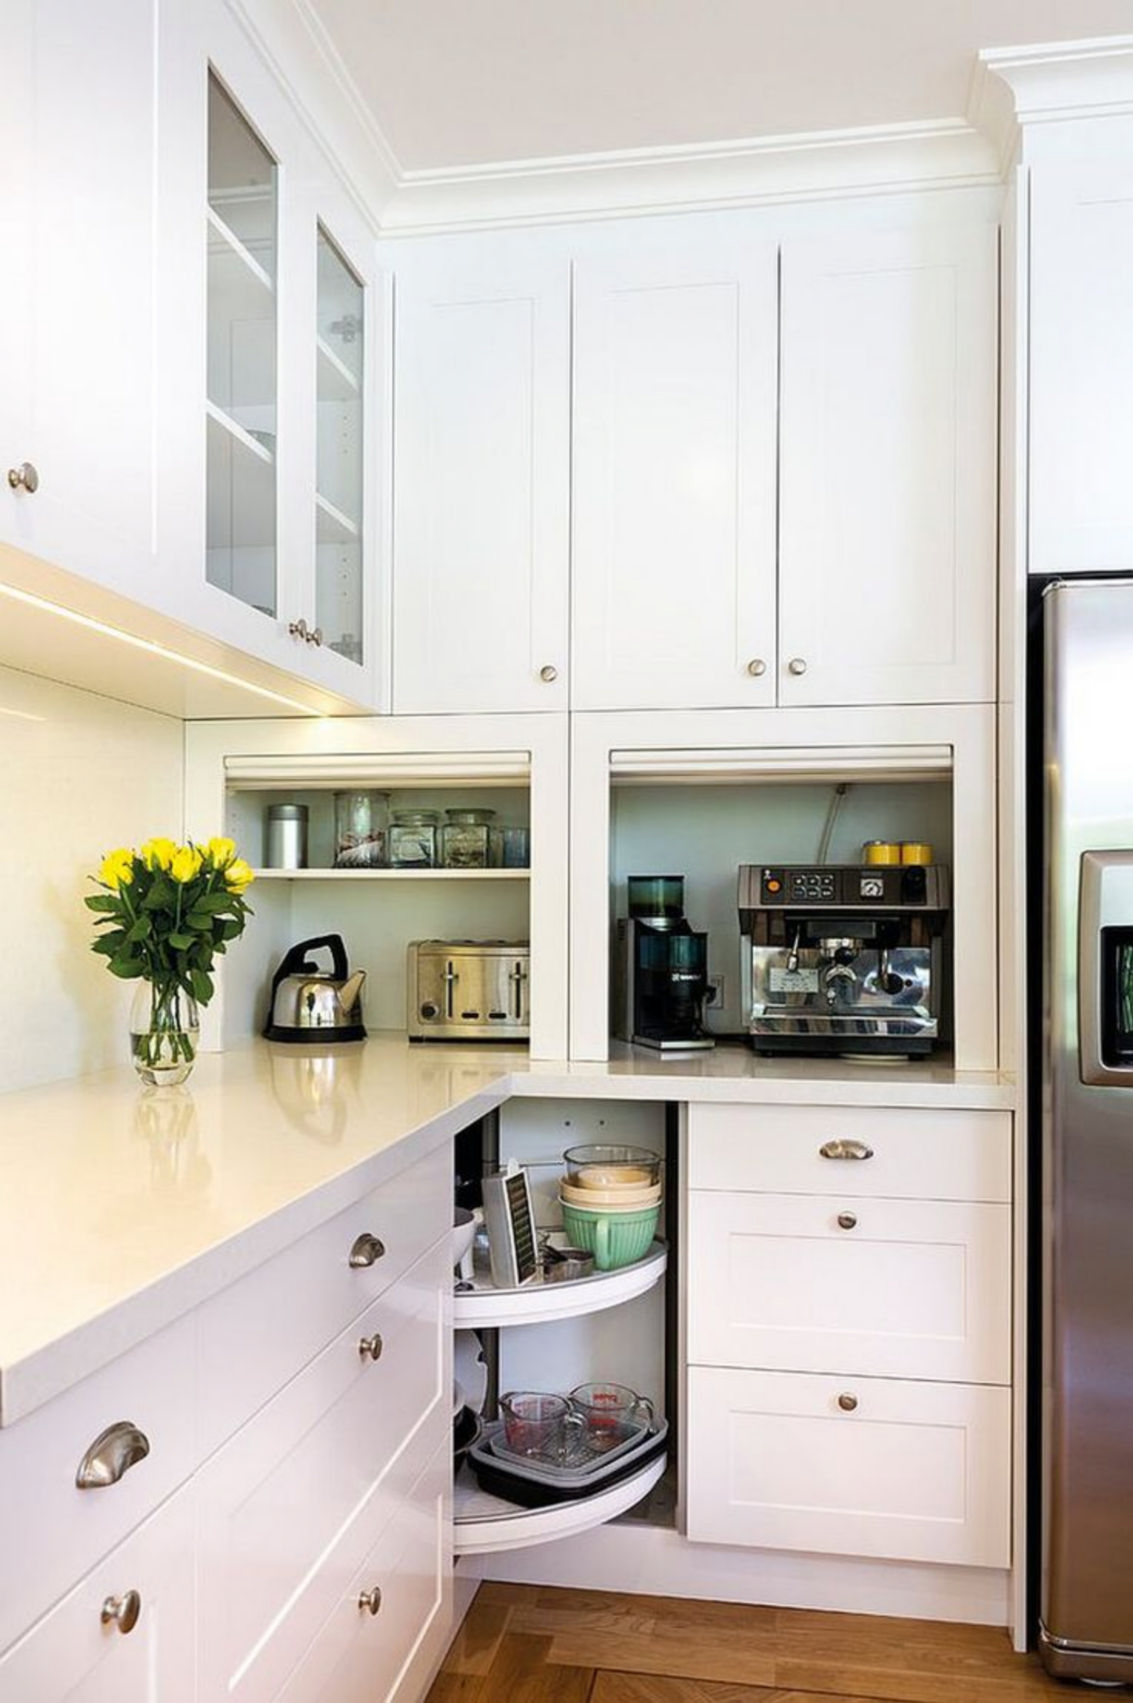 Make a small kitchen even bigger by adding the hidden cabinets and drawers 6.  maximize